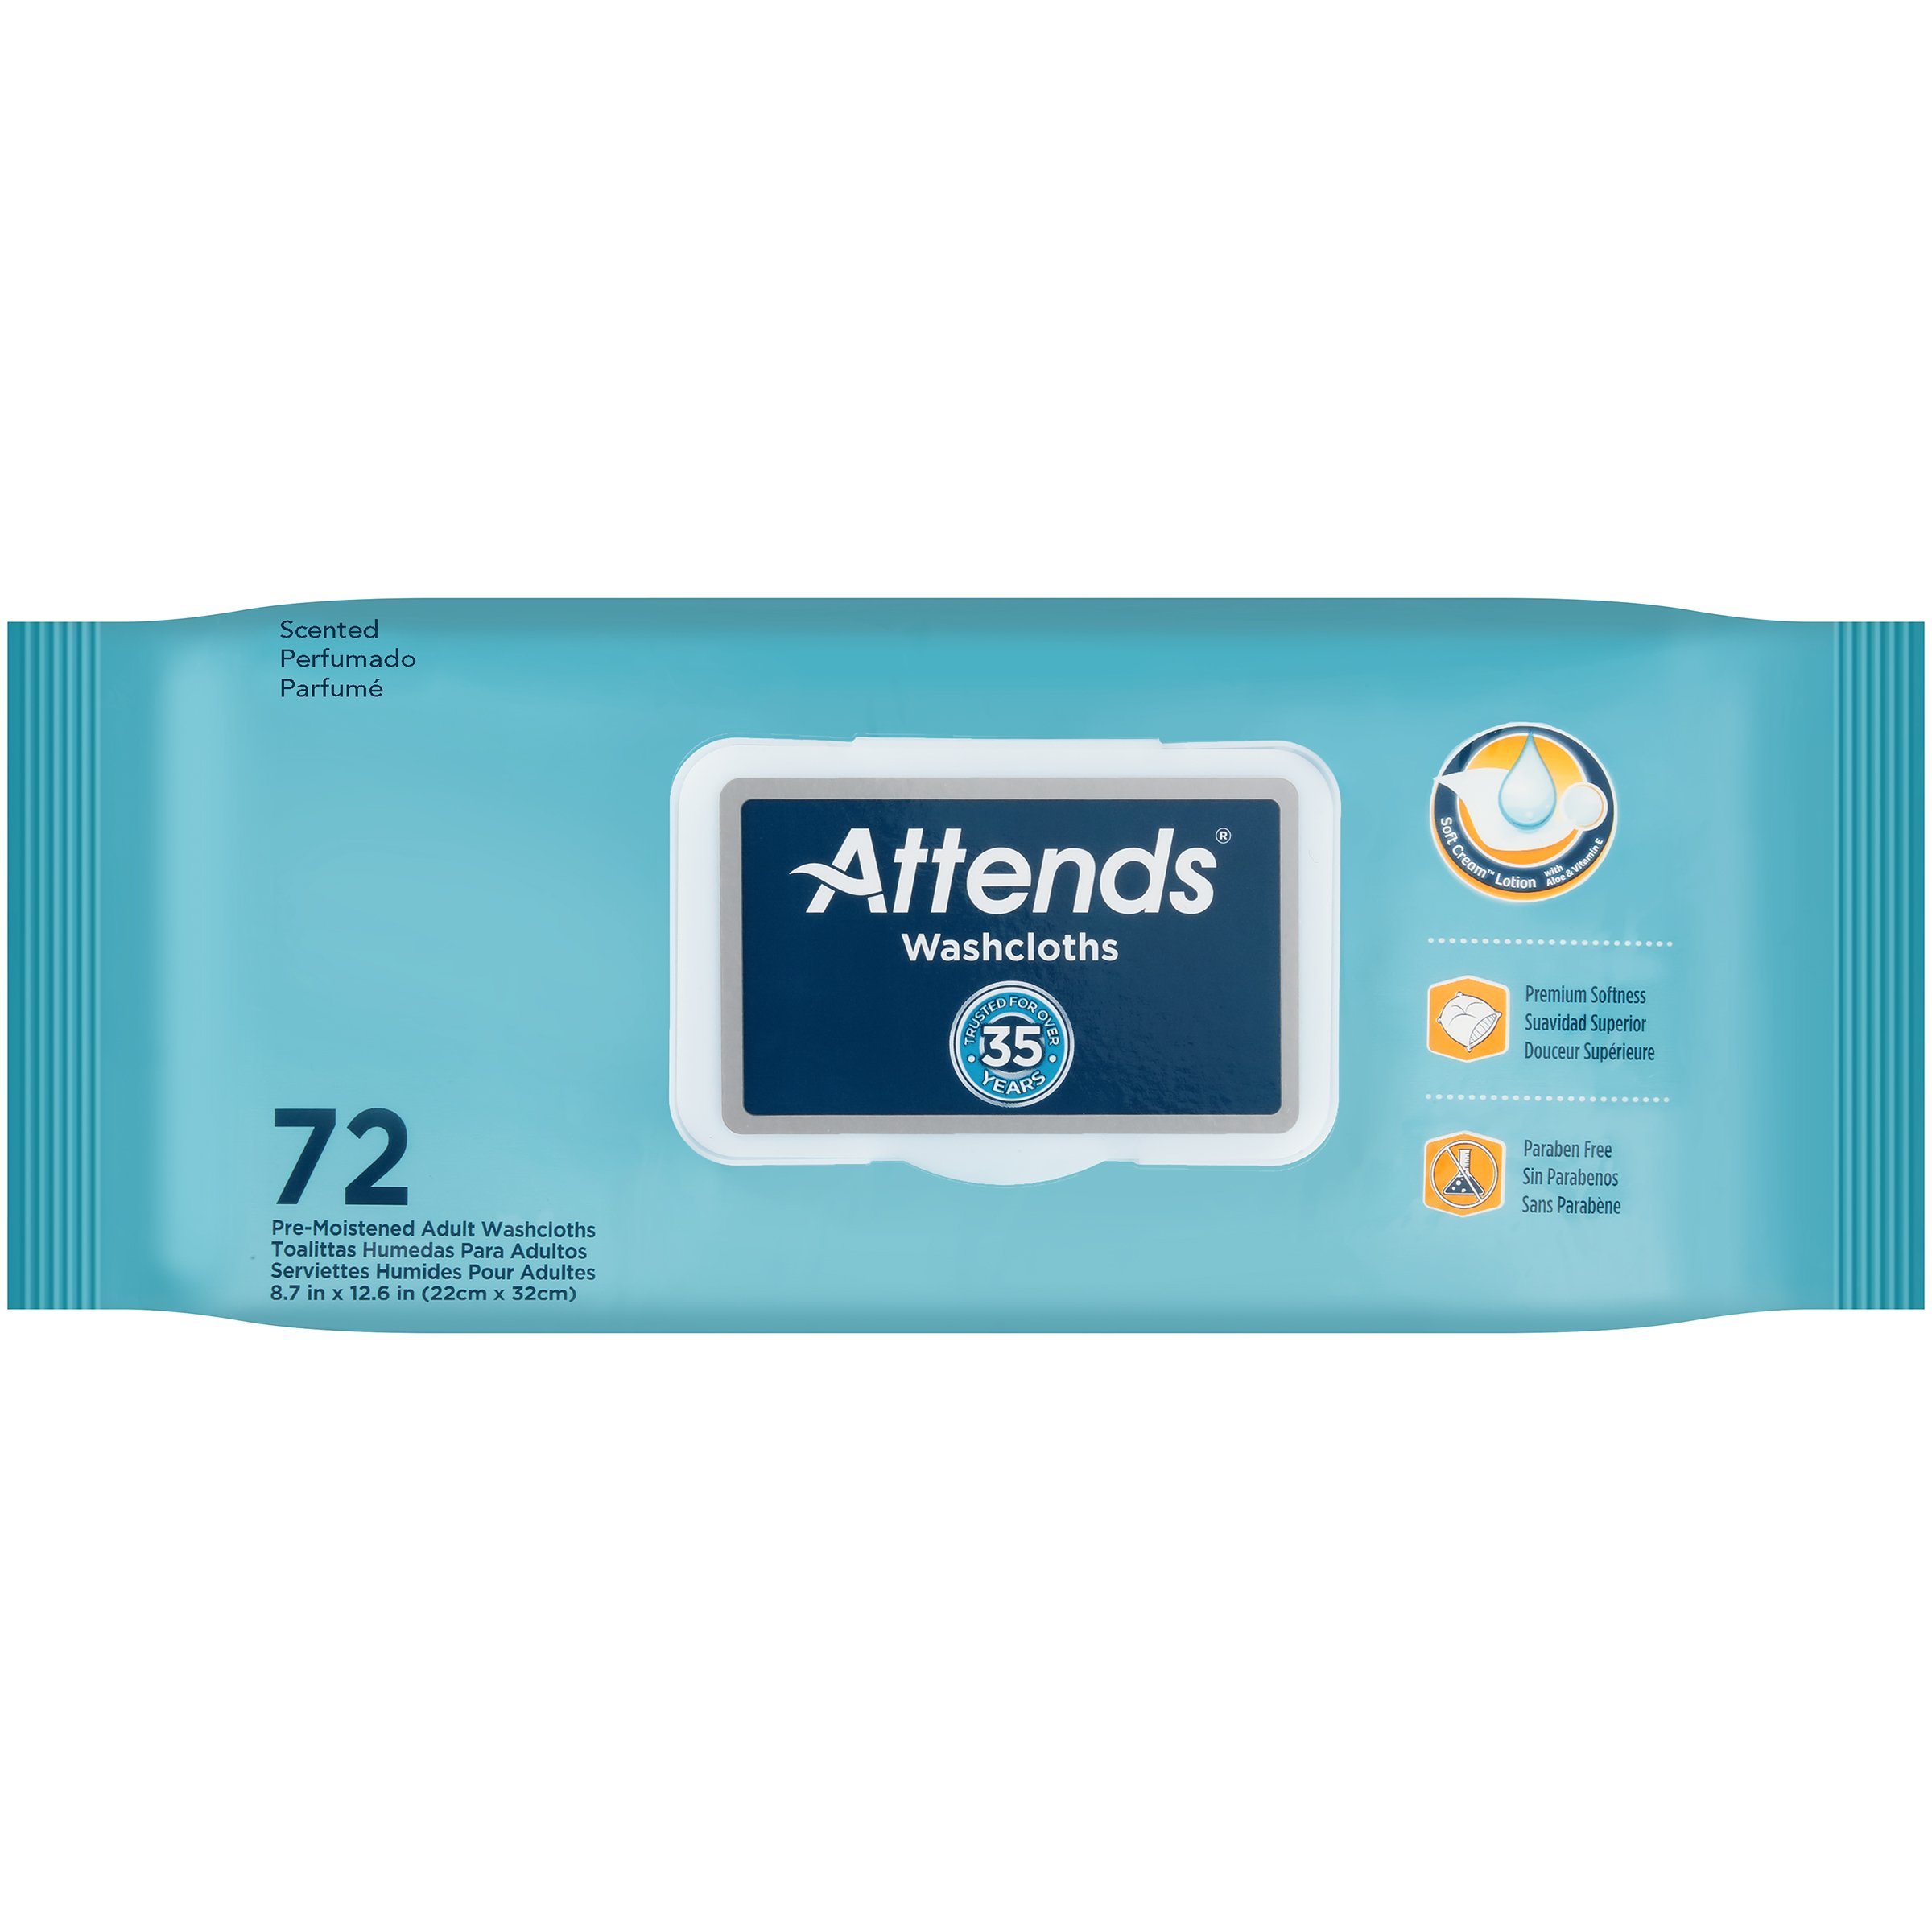 Attends Scented Washcloths for Adult Incontinence Care, hypoallergenic, Latex and Alcohol Free, 72